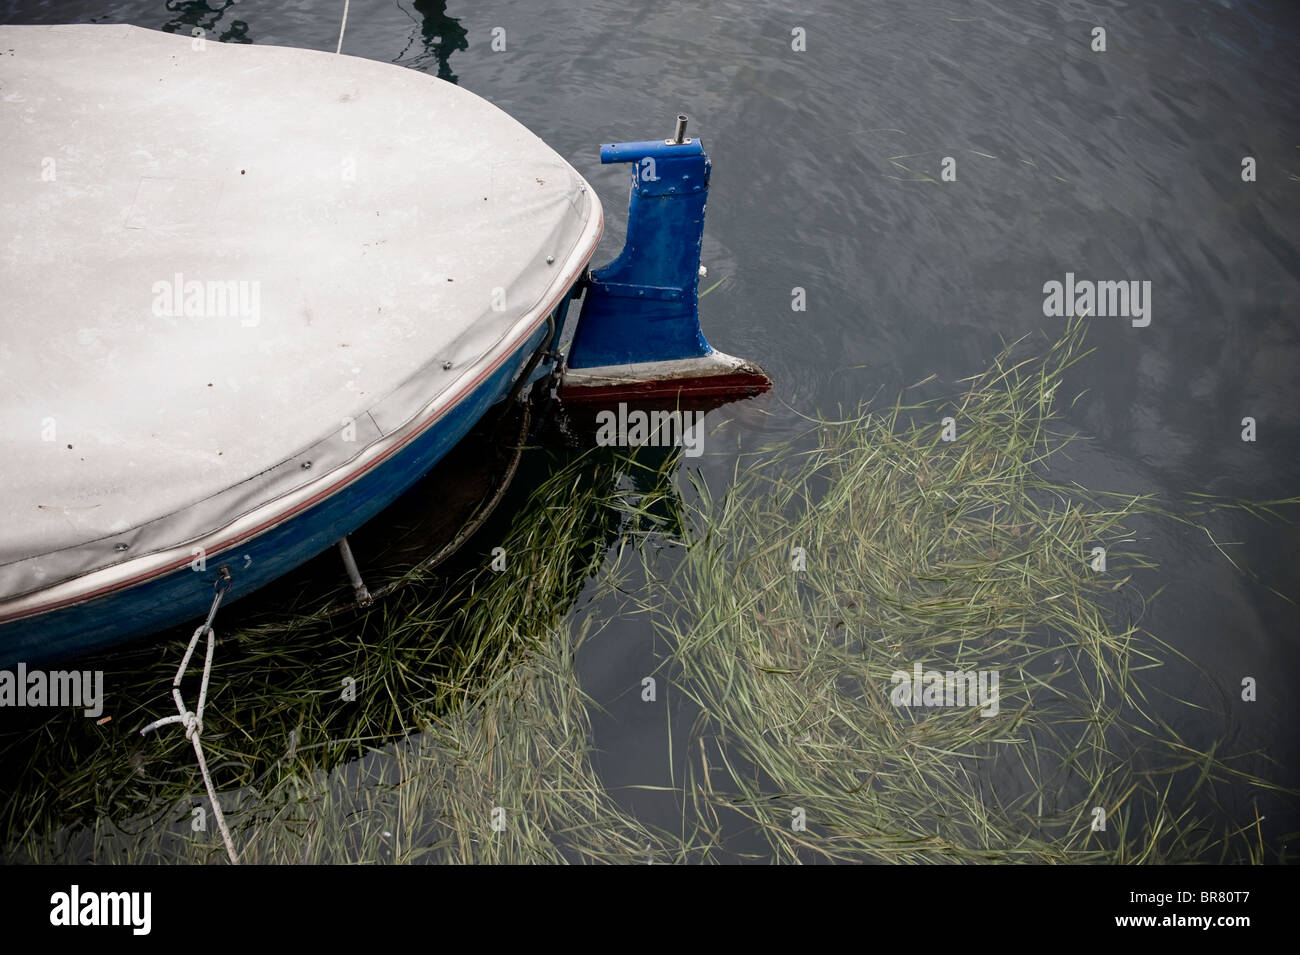 Boat and weed in harbour pier area in Lake Iseo, Iseo, northern Italy. - Stock Image